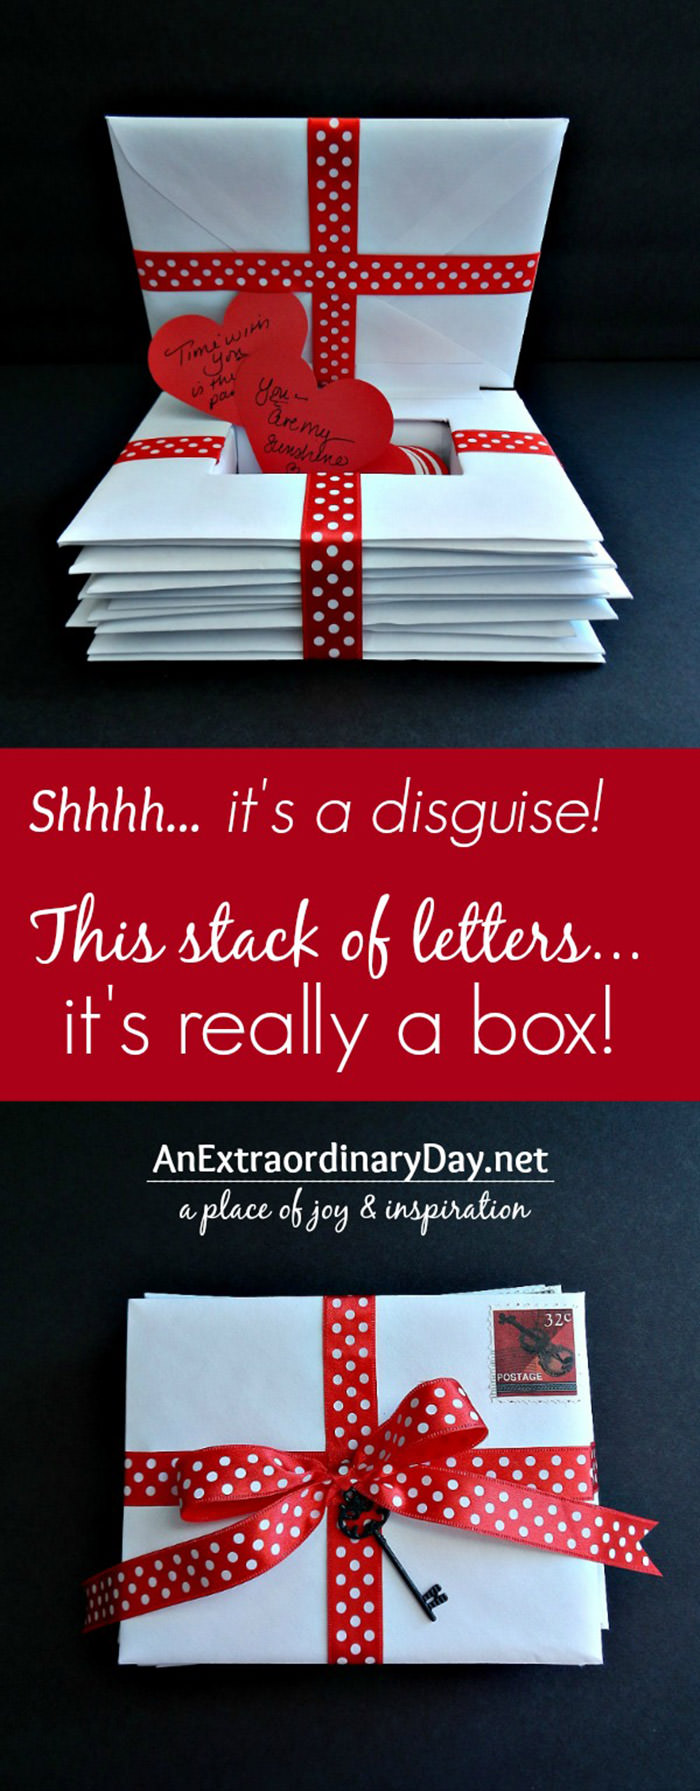 Box Disguised as Letters